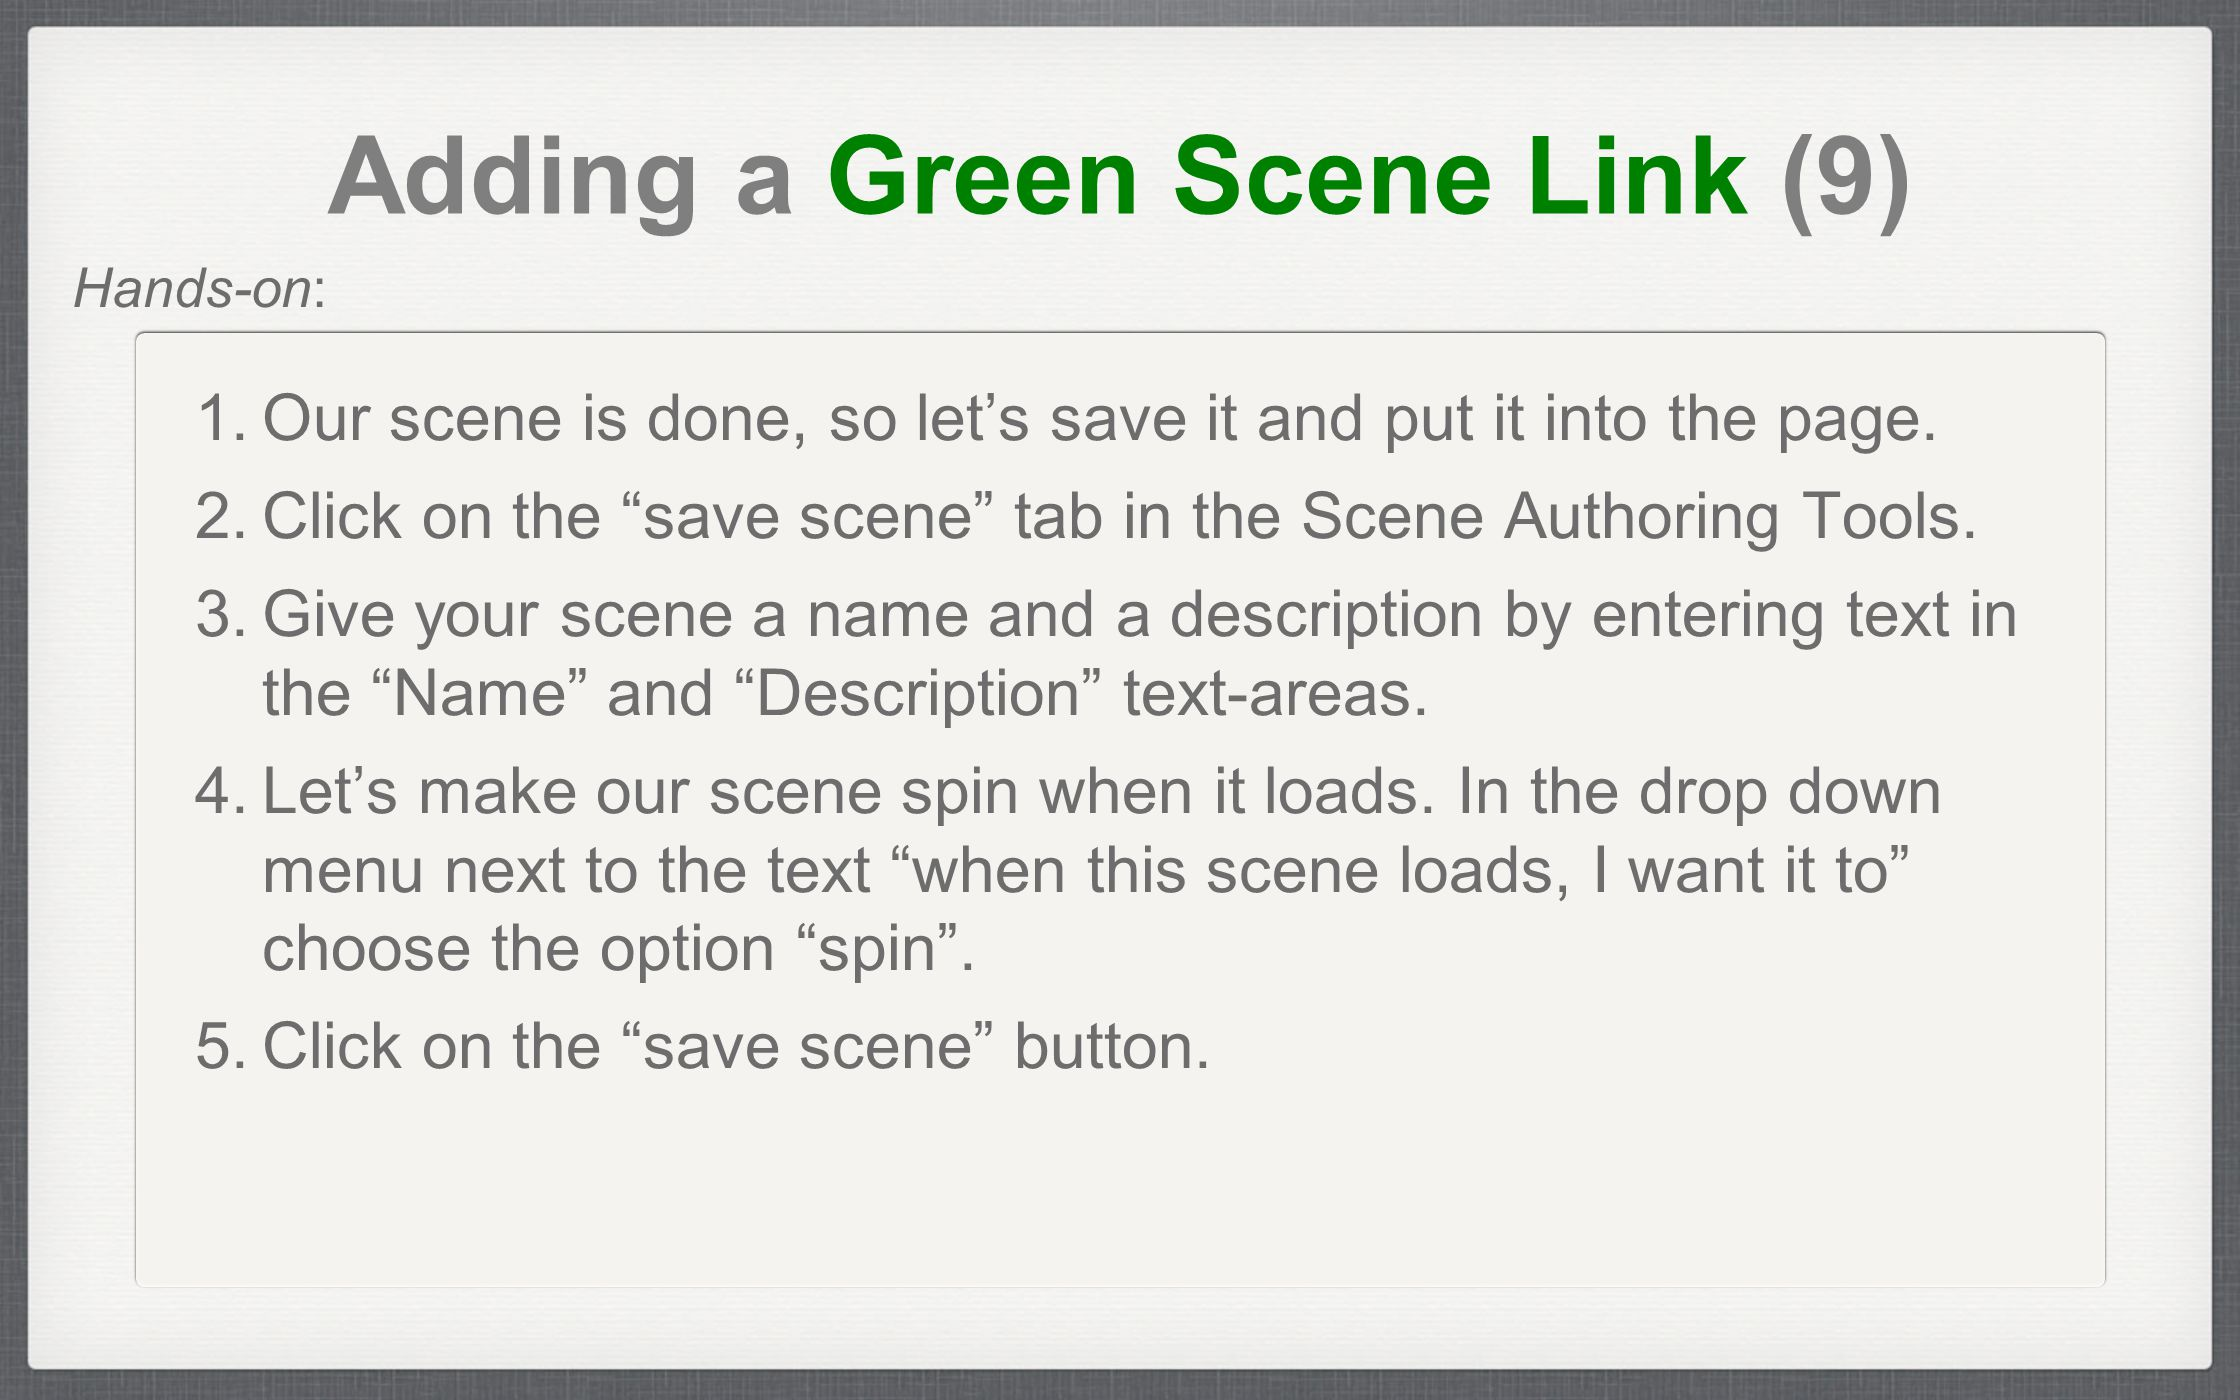 Adding a Green Scene Link (9) 1. Our scene is done, so let's save it and put it into the page.